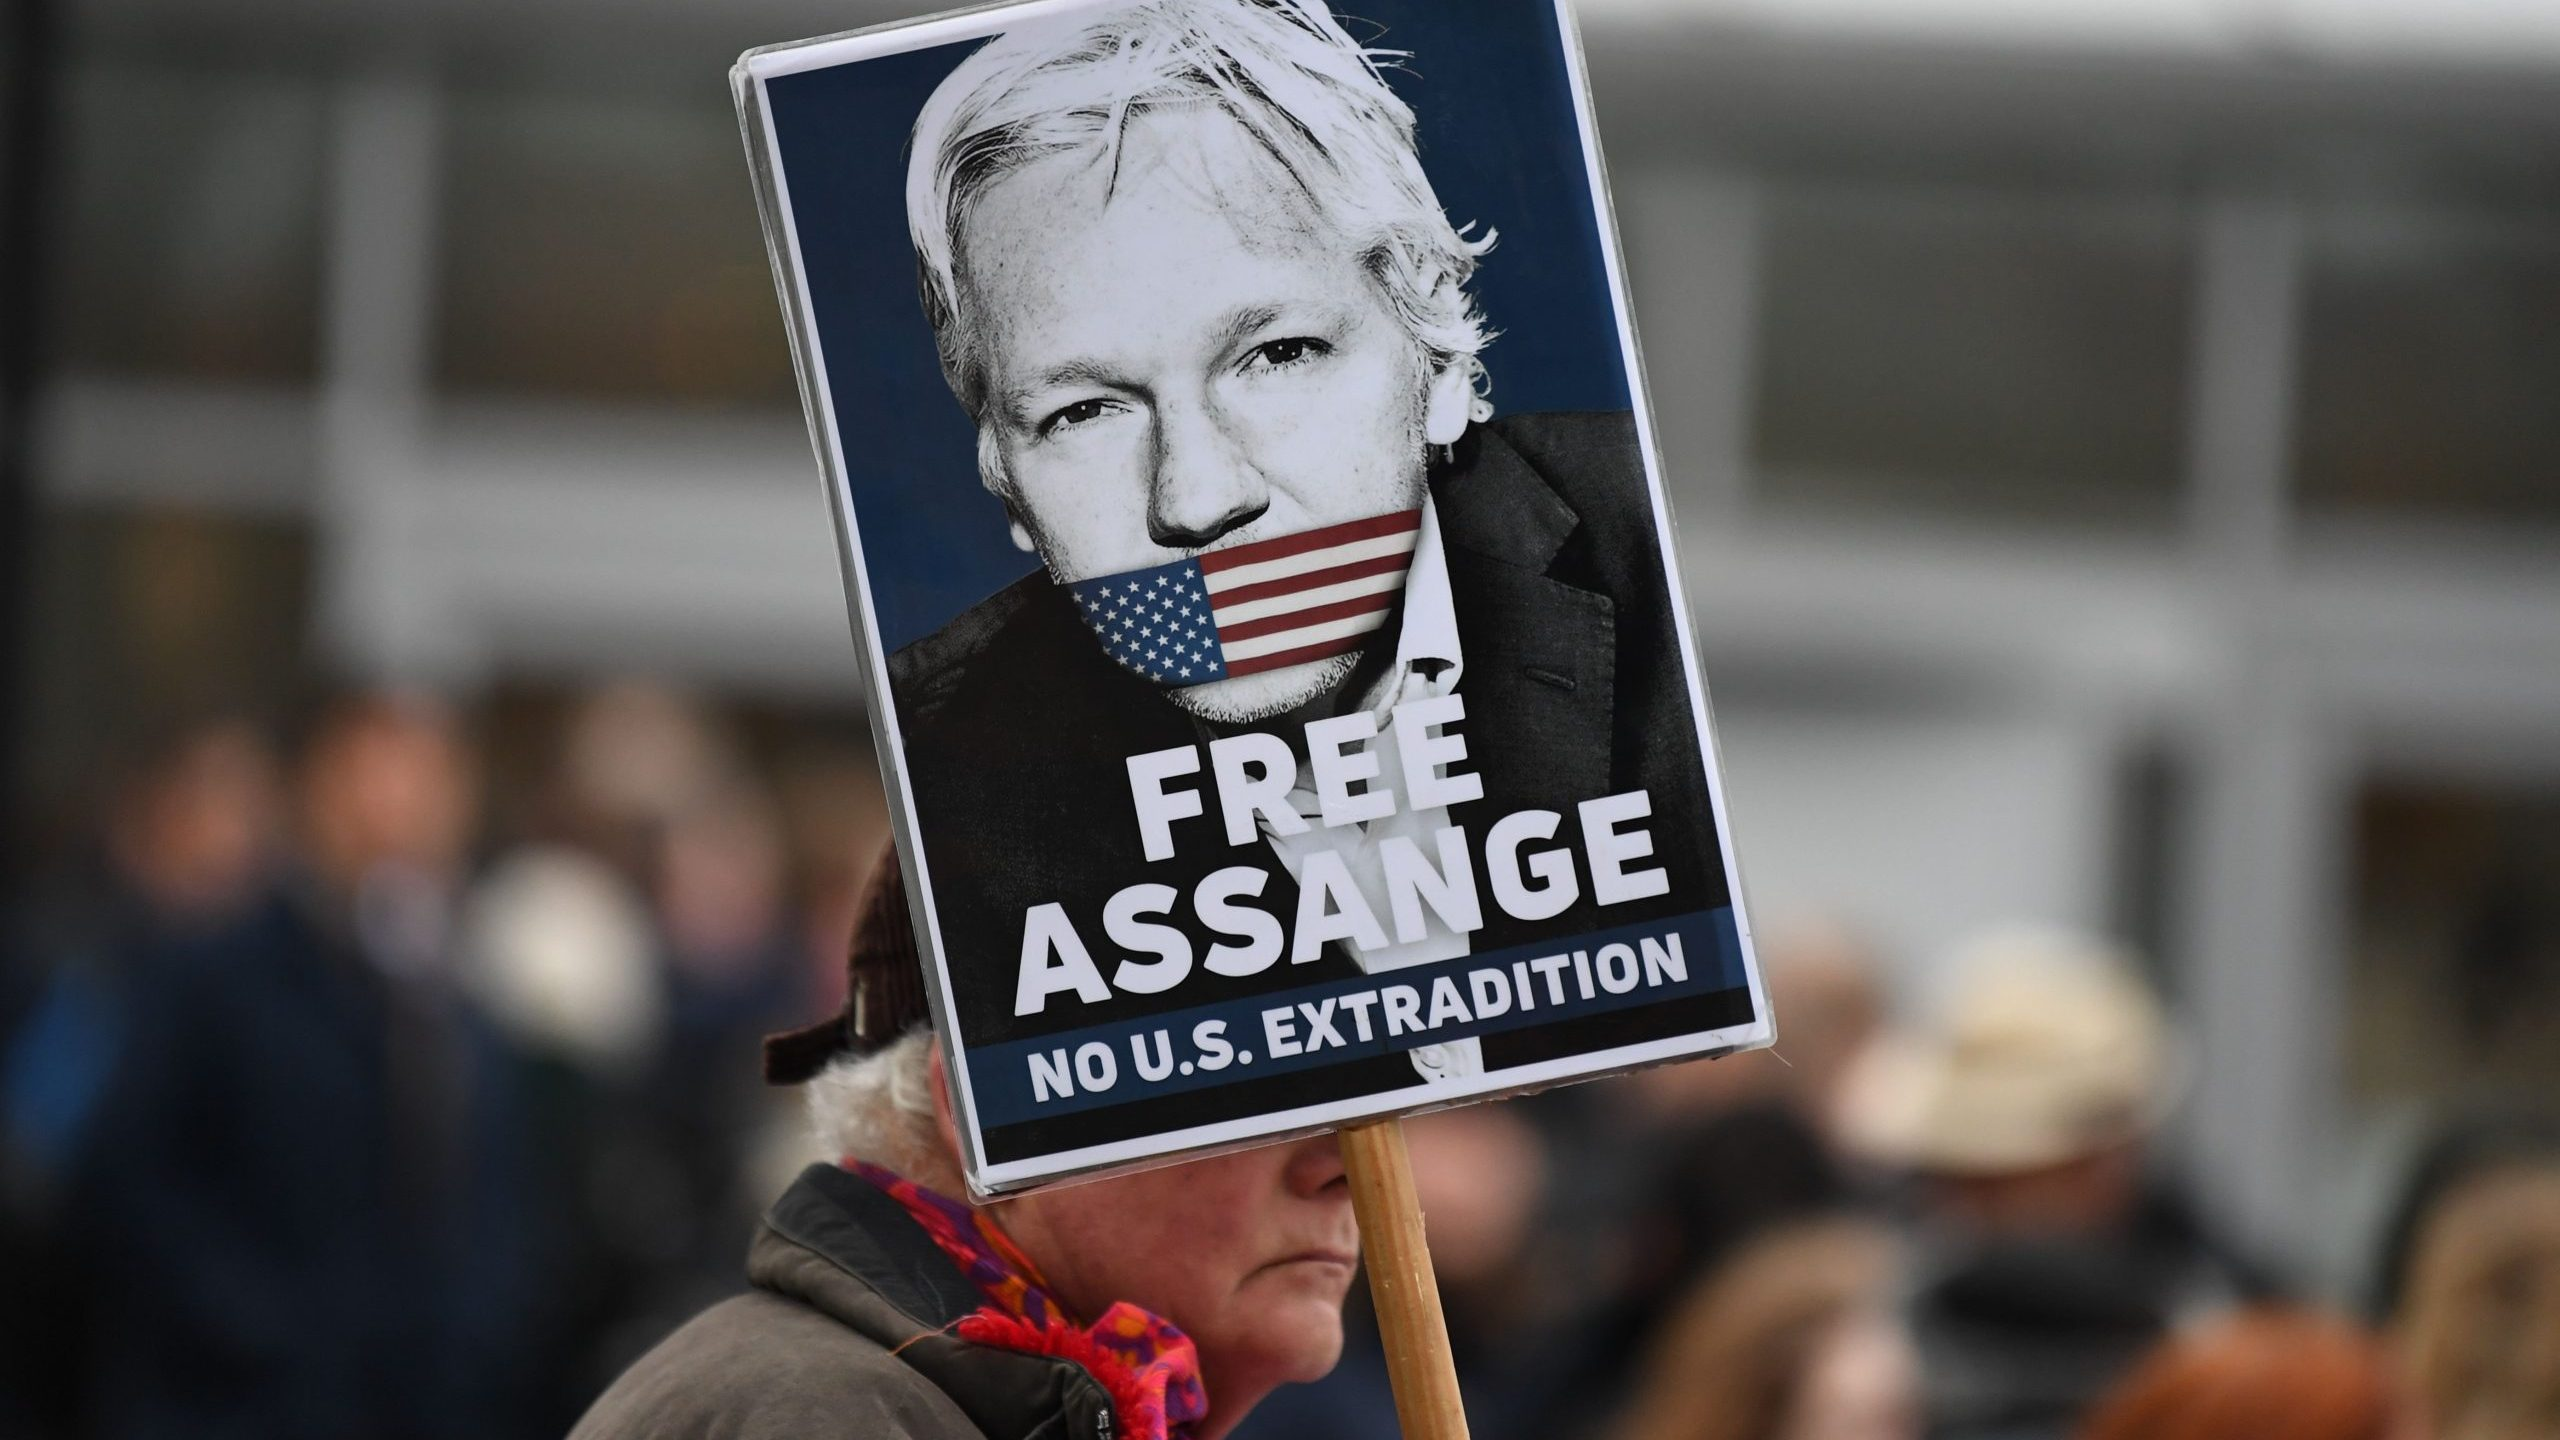 A supporter of WikiLeaks founder Julian Assange holds a placard calling for his freedom outside Woolwich Crown Court and HMP Belmarsh prison in southeast London on Feb. 24, 2020, ahead of the opening of the trial to hear a U.S. request for Assange's extradition. (Credit: DANIEL LEAL-OLIVAS/AFP via Getty Images)